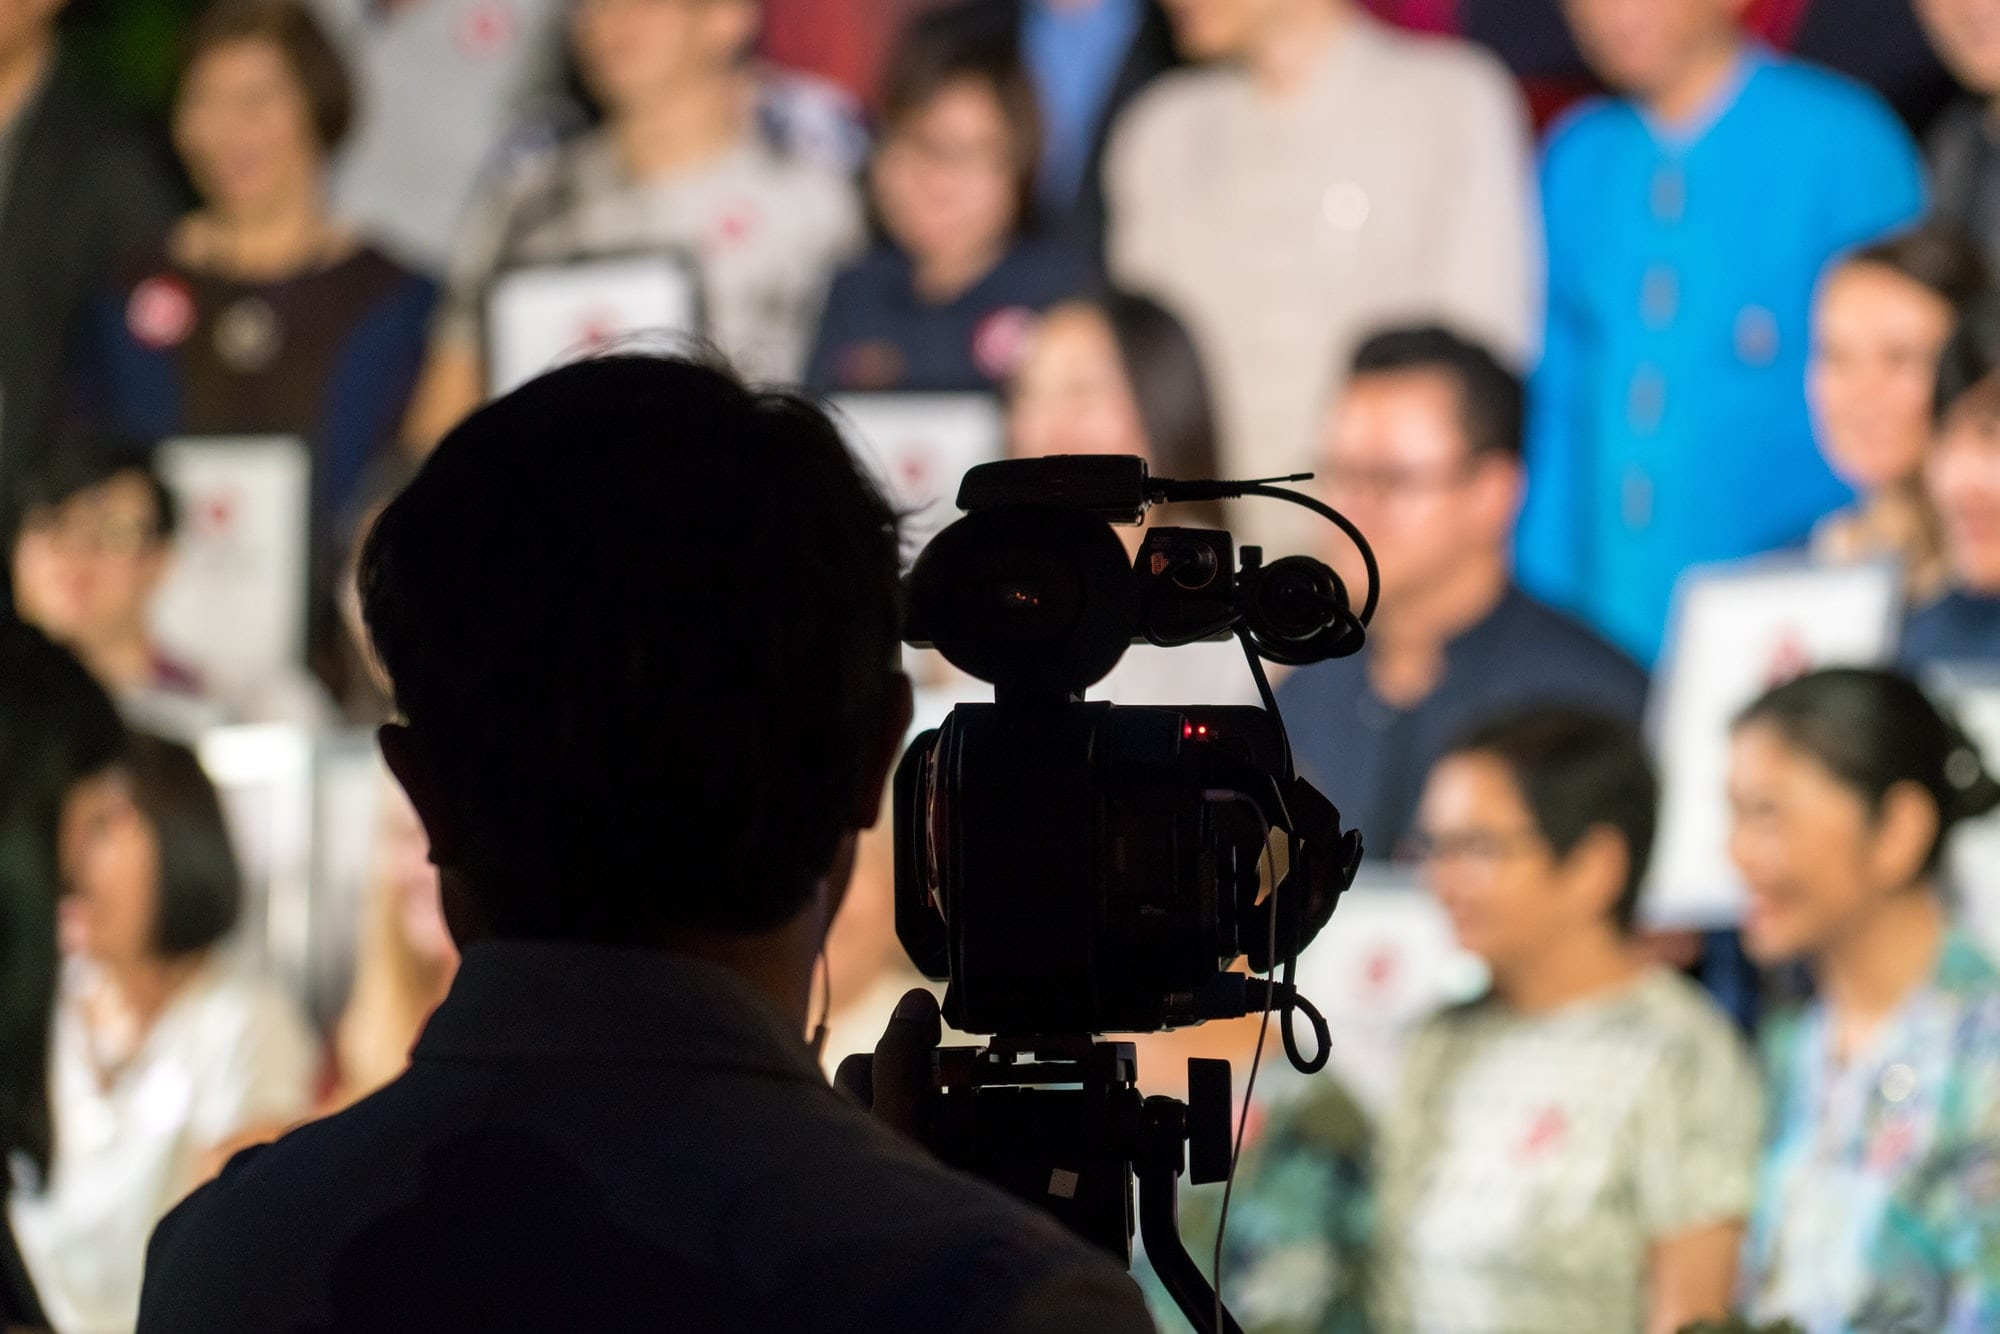 Silhouette of professional camera man from behind with audience of men and women sitting background.